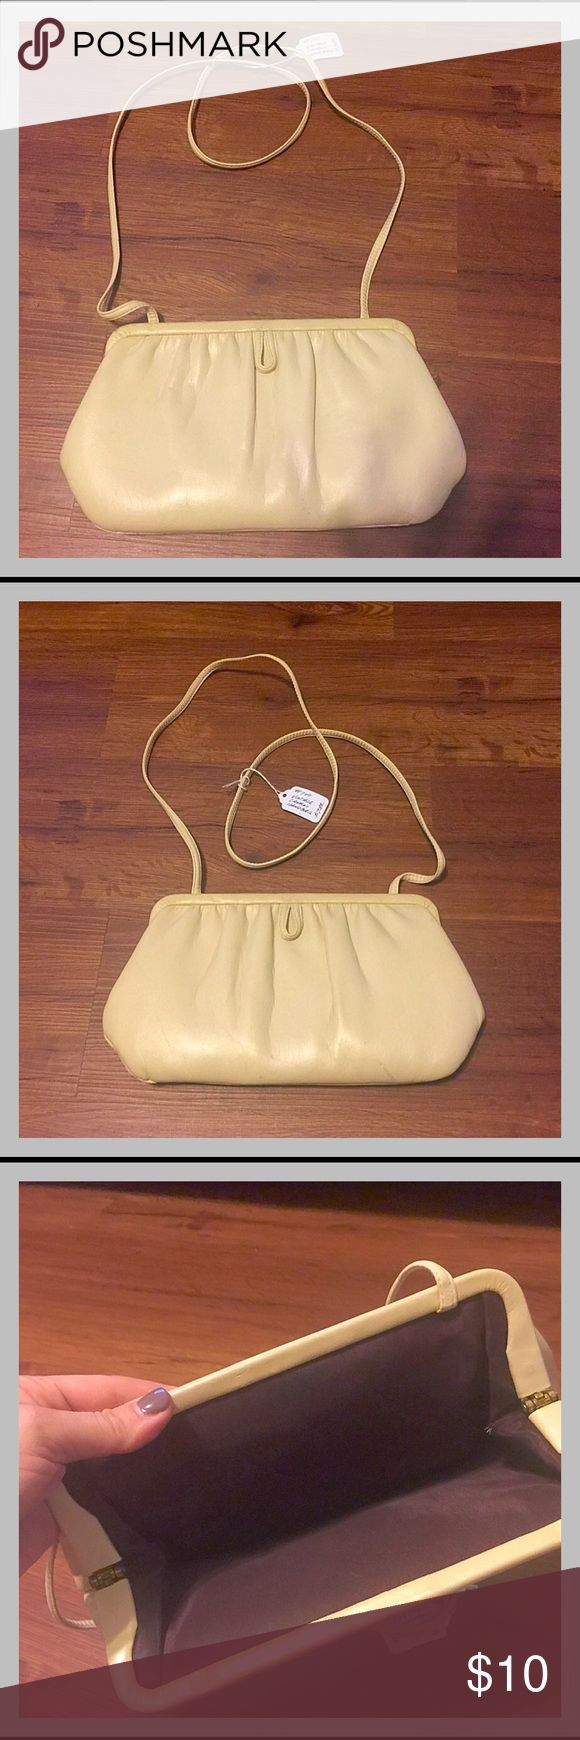 """Vintage Cream Shoulder Bag Small vintage shoulder bag.  Very minimal signs of wear.  Excellent vintage condition!  Measures 11"""" across (at widest point) and is 6"""" tall.  Strap is 20"""" long. Vintage Bags Shoulder Bags"""